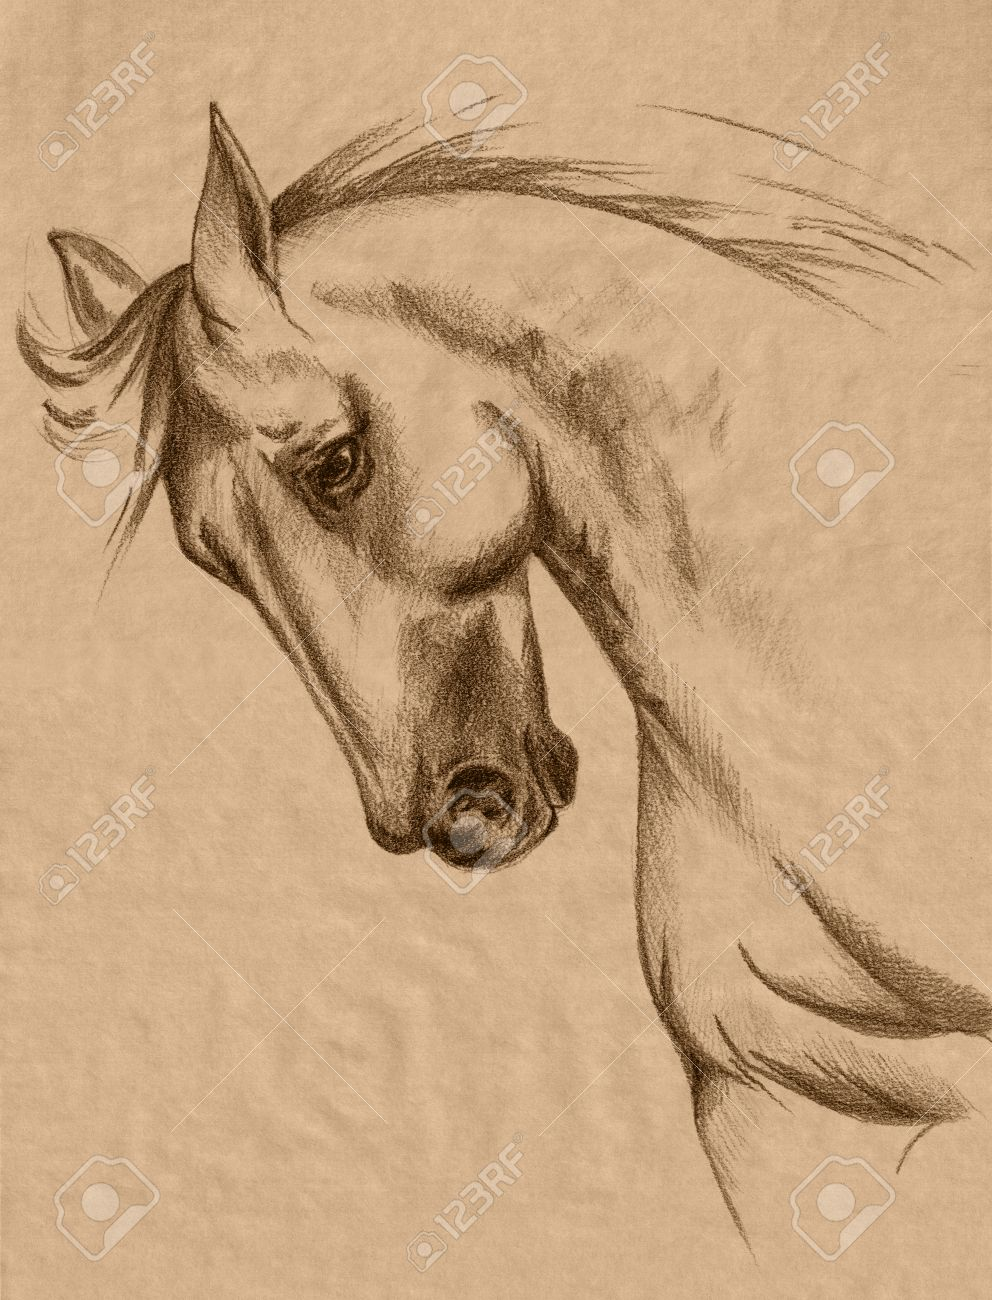 Freehand Horse Head Sepia Toned Pencil Drawing Realistic Animal Stock Photo Picture And Royalty Free Image Image 26815107